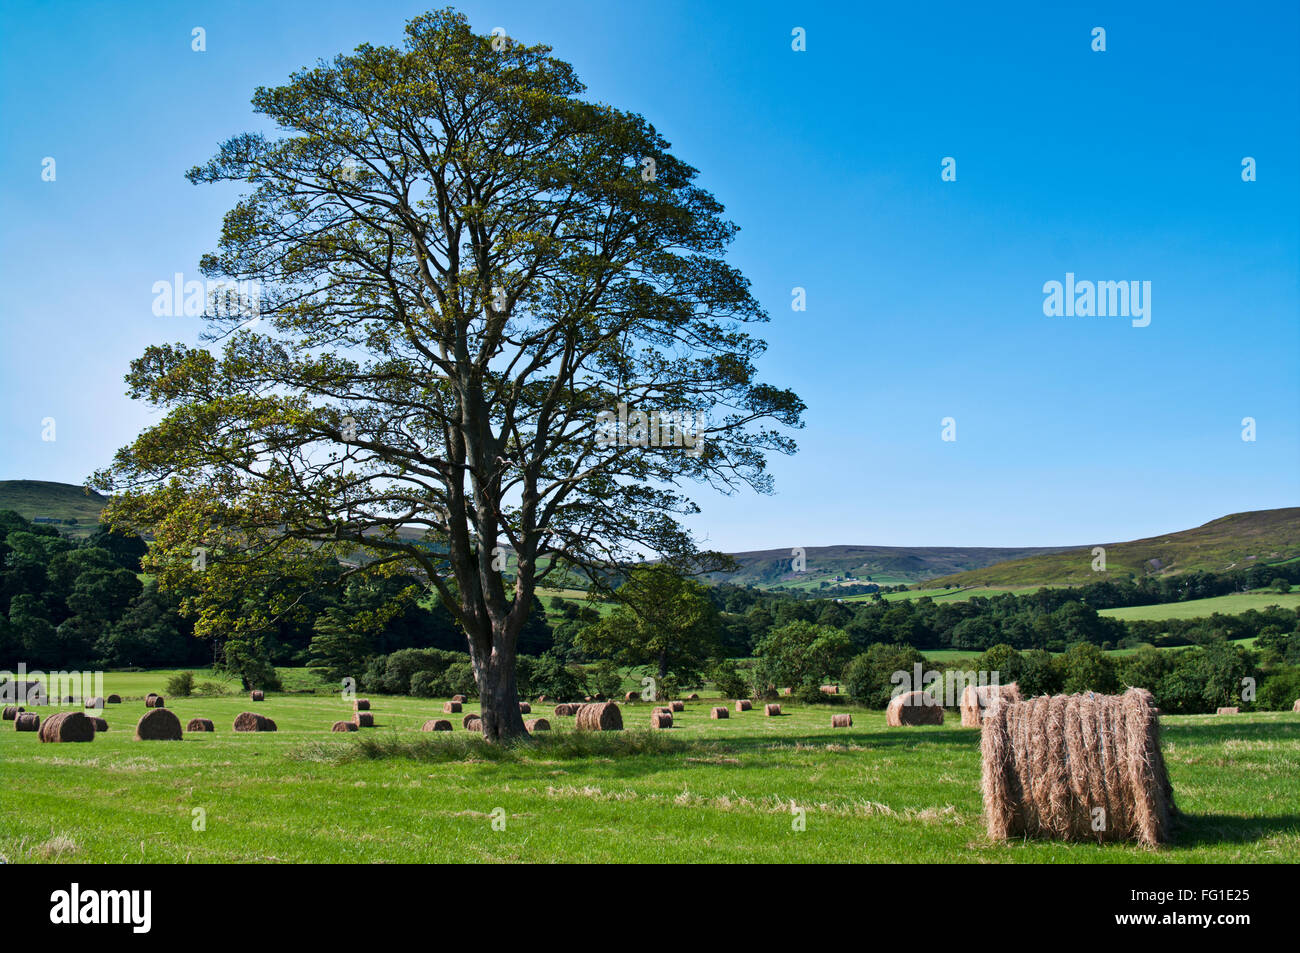 Beautiful specimen tree and round hay bales in a field in Westerdale, North York Moors, early morning summer sunshine, - Stock Image